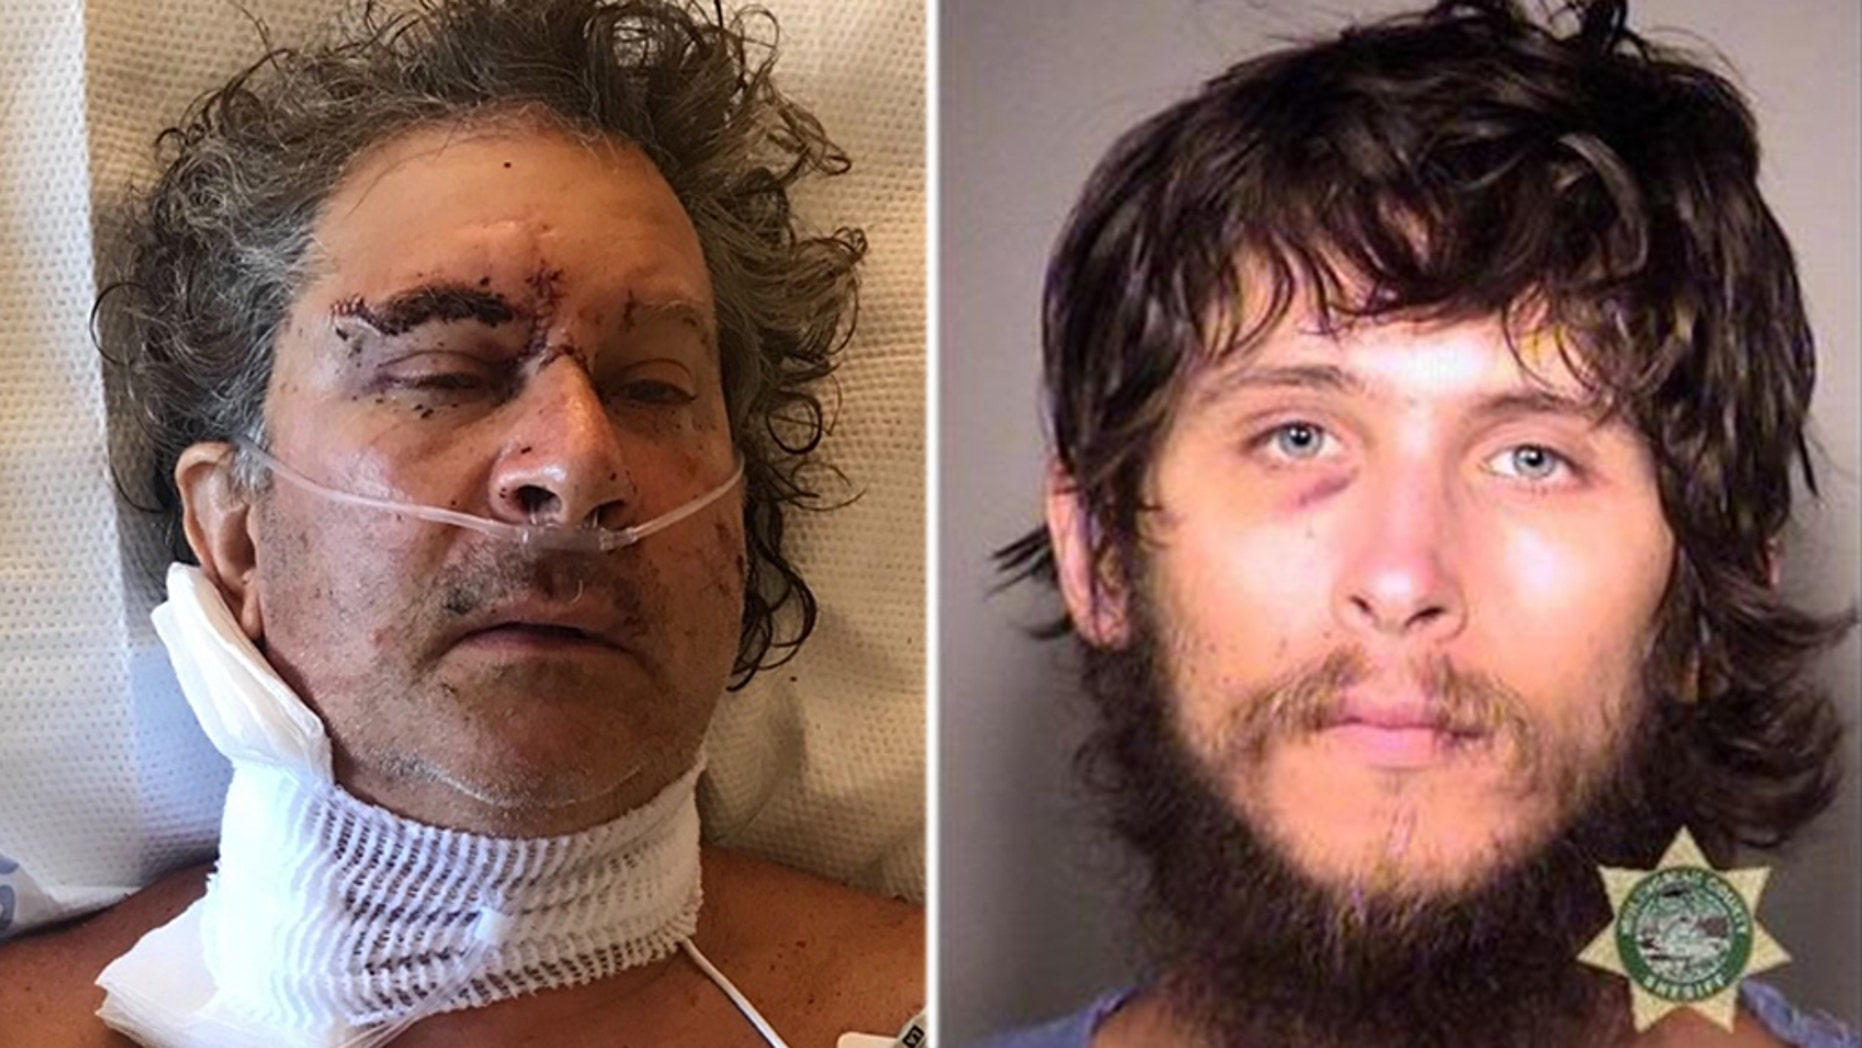 Kasey Lebechuck, left, was reportedly stabbed 17 times after telling Todd Schneider, right, he couldn't camp out in his Portland, Oregon, neighborhood.